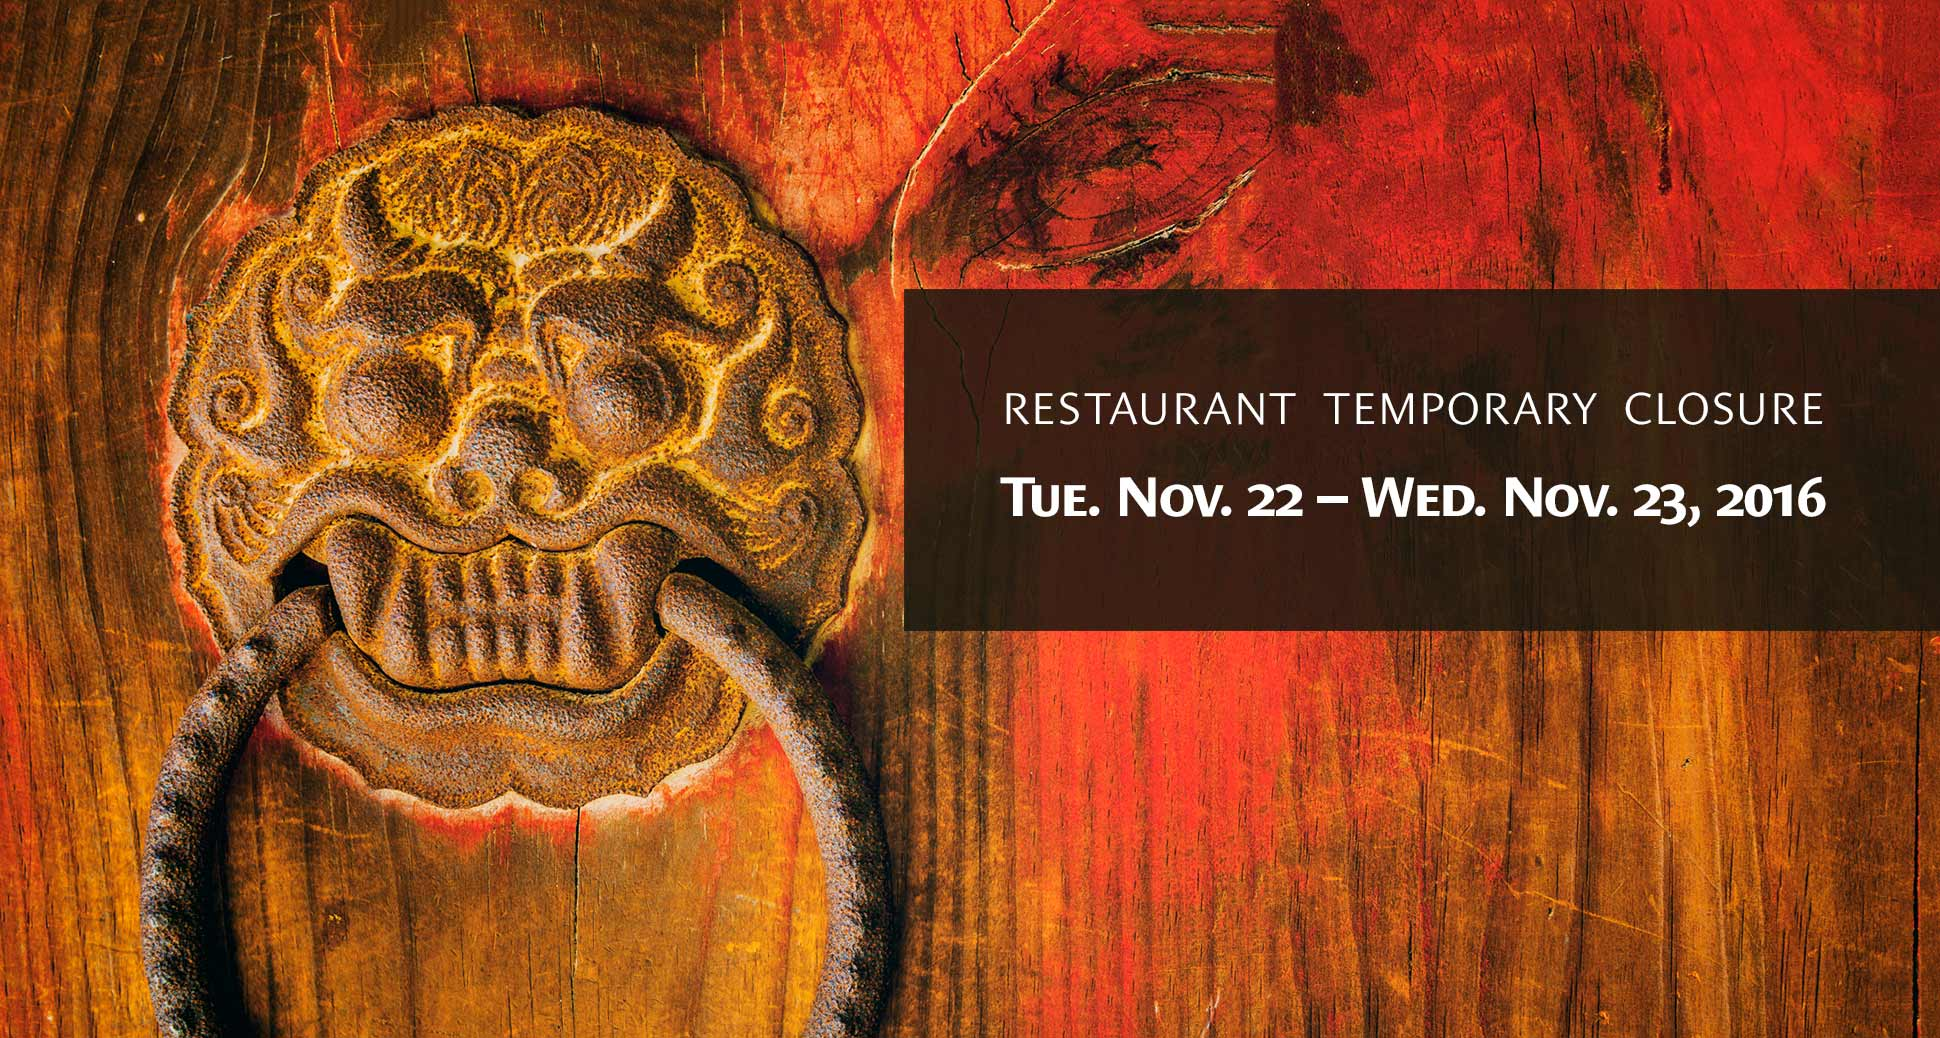 Restaurant Temporary Closure